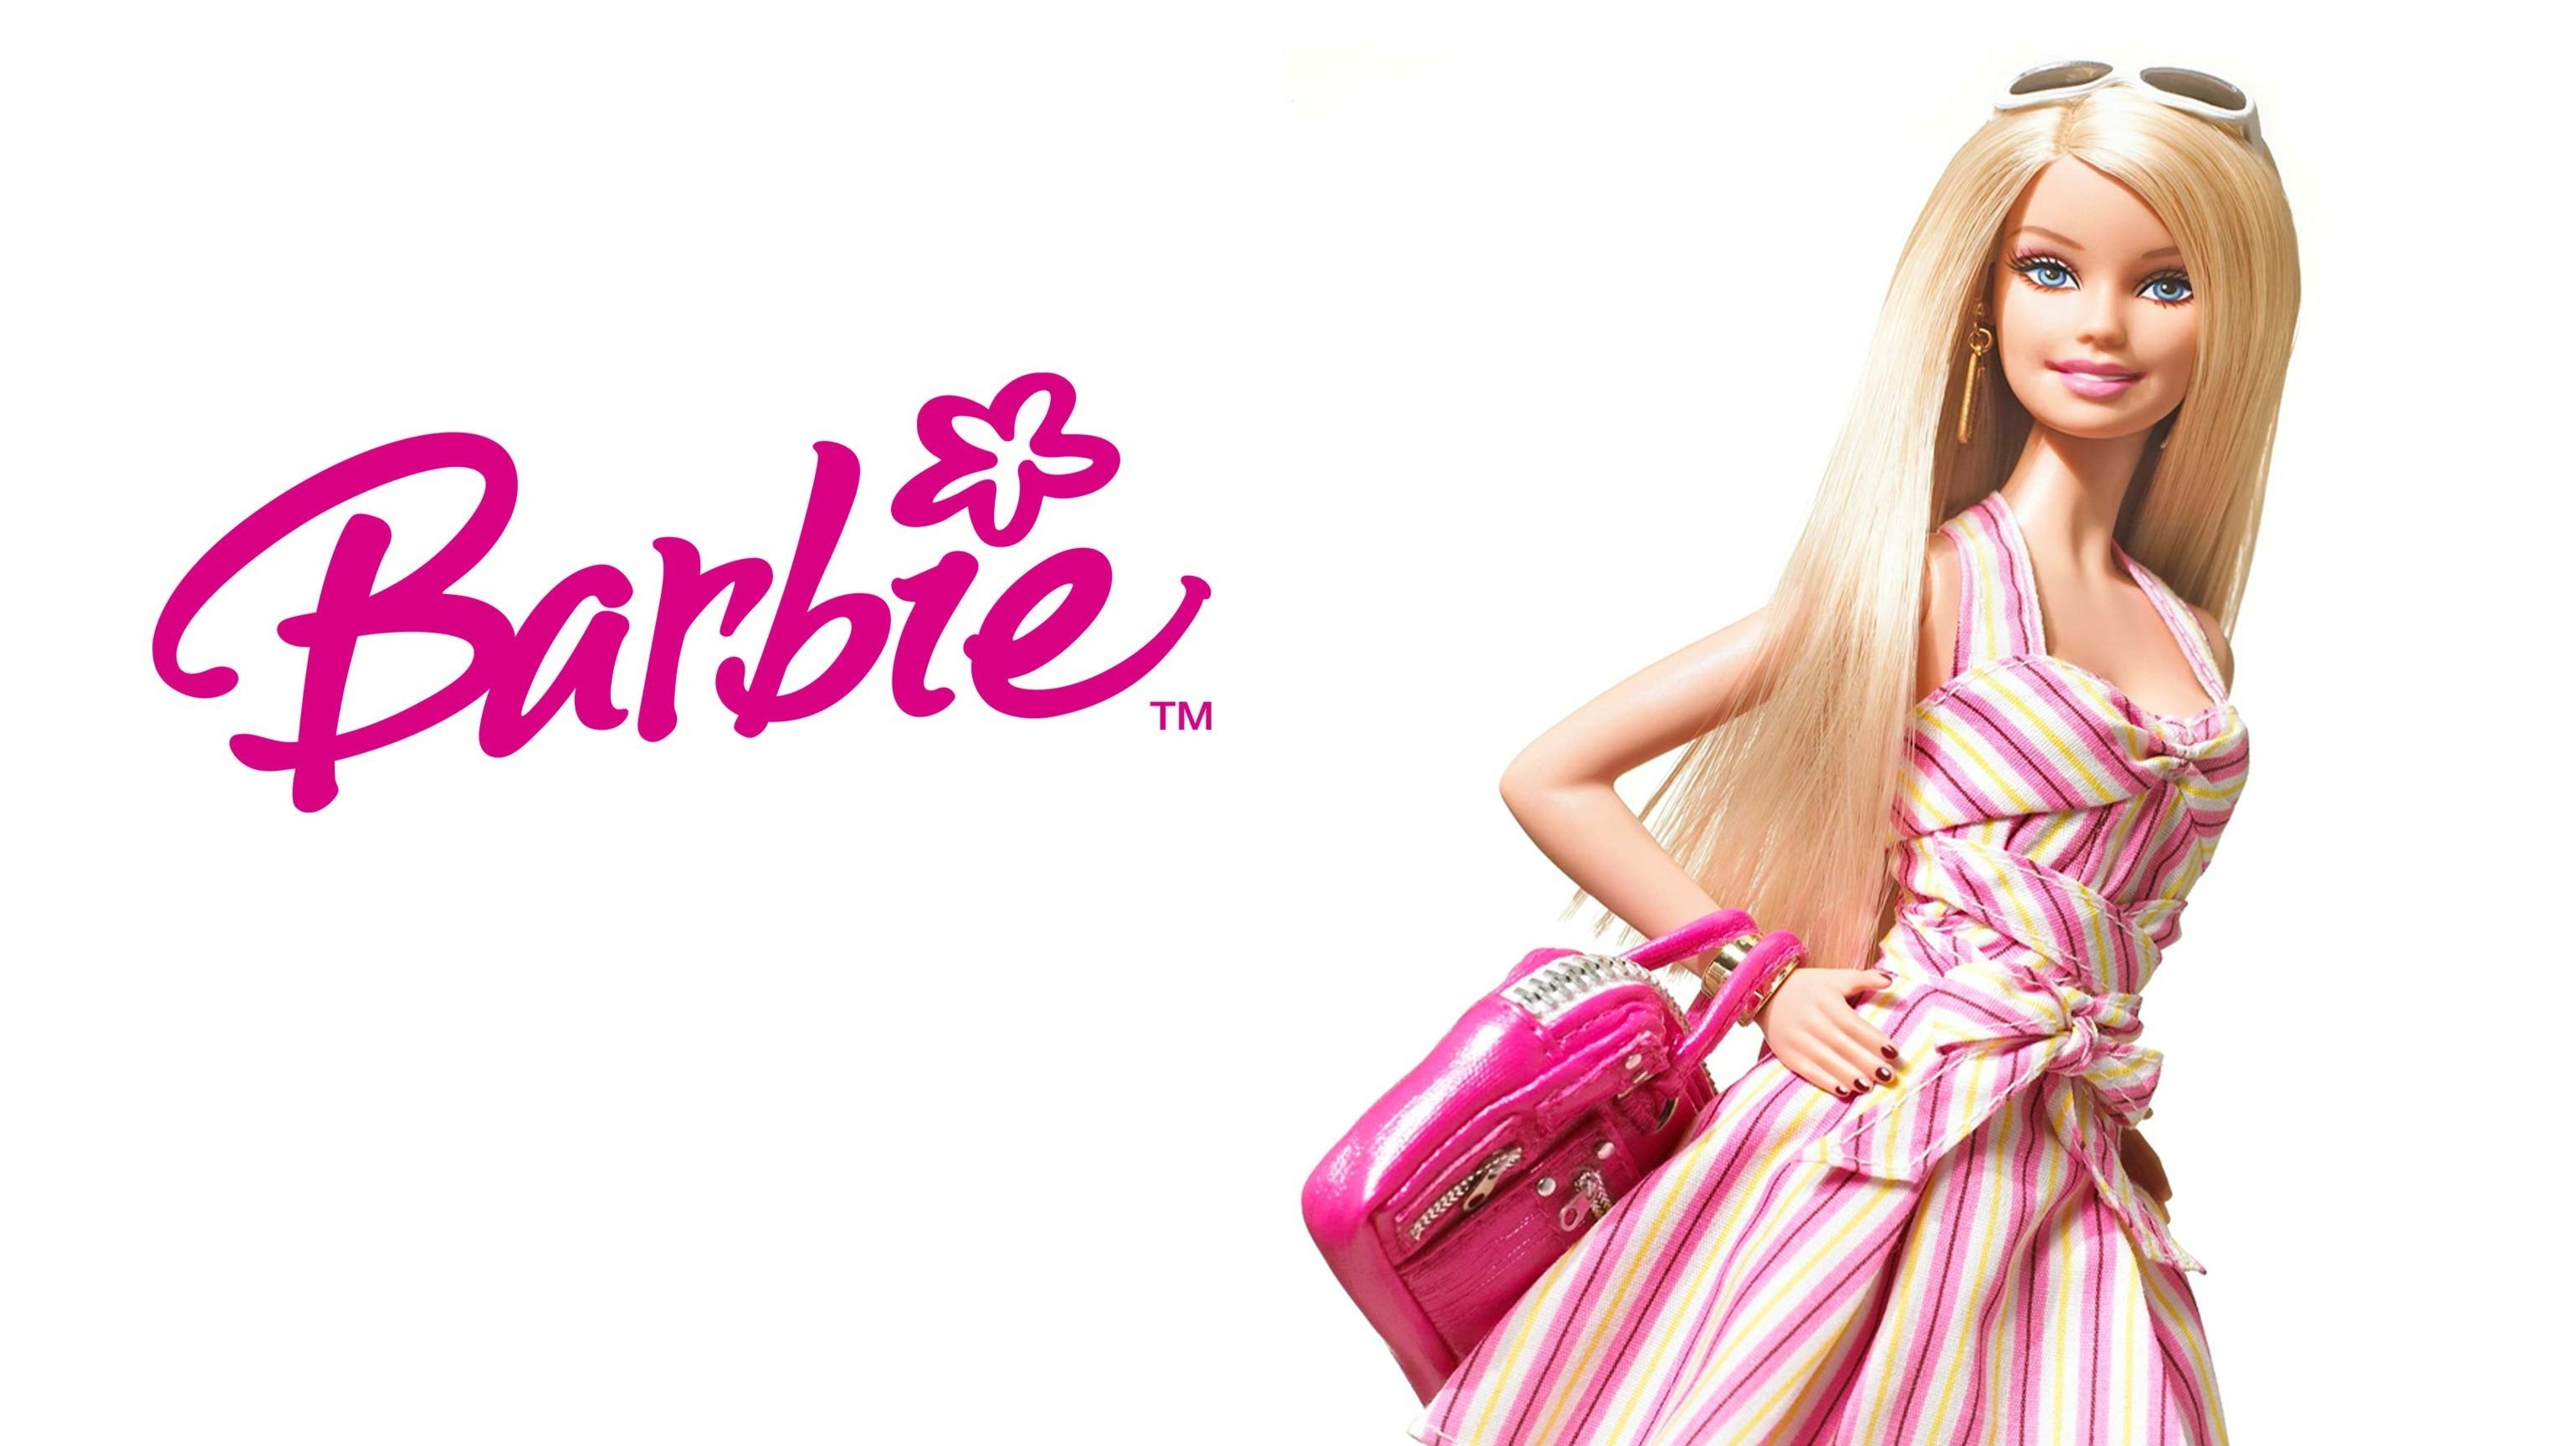 xpx Beautiful Barbie Wallpapers wallpapers